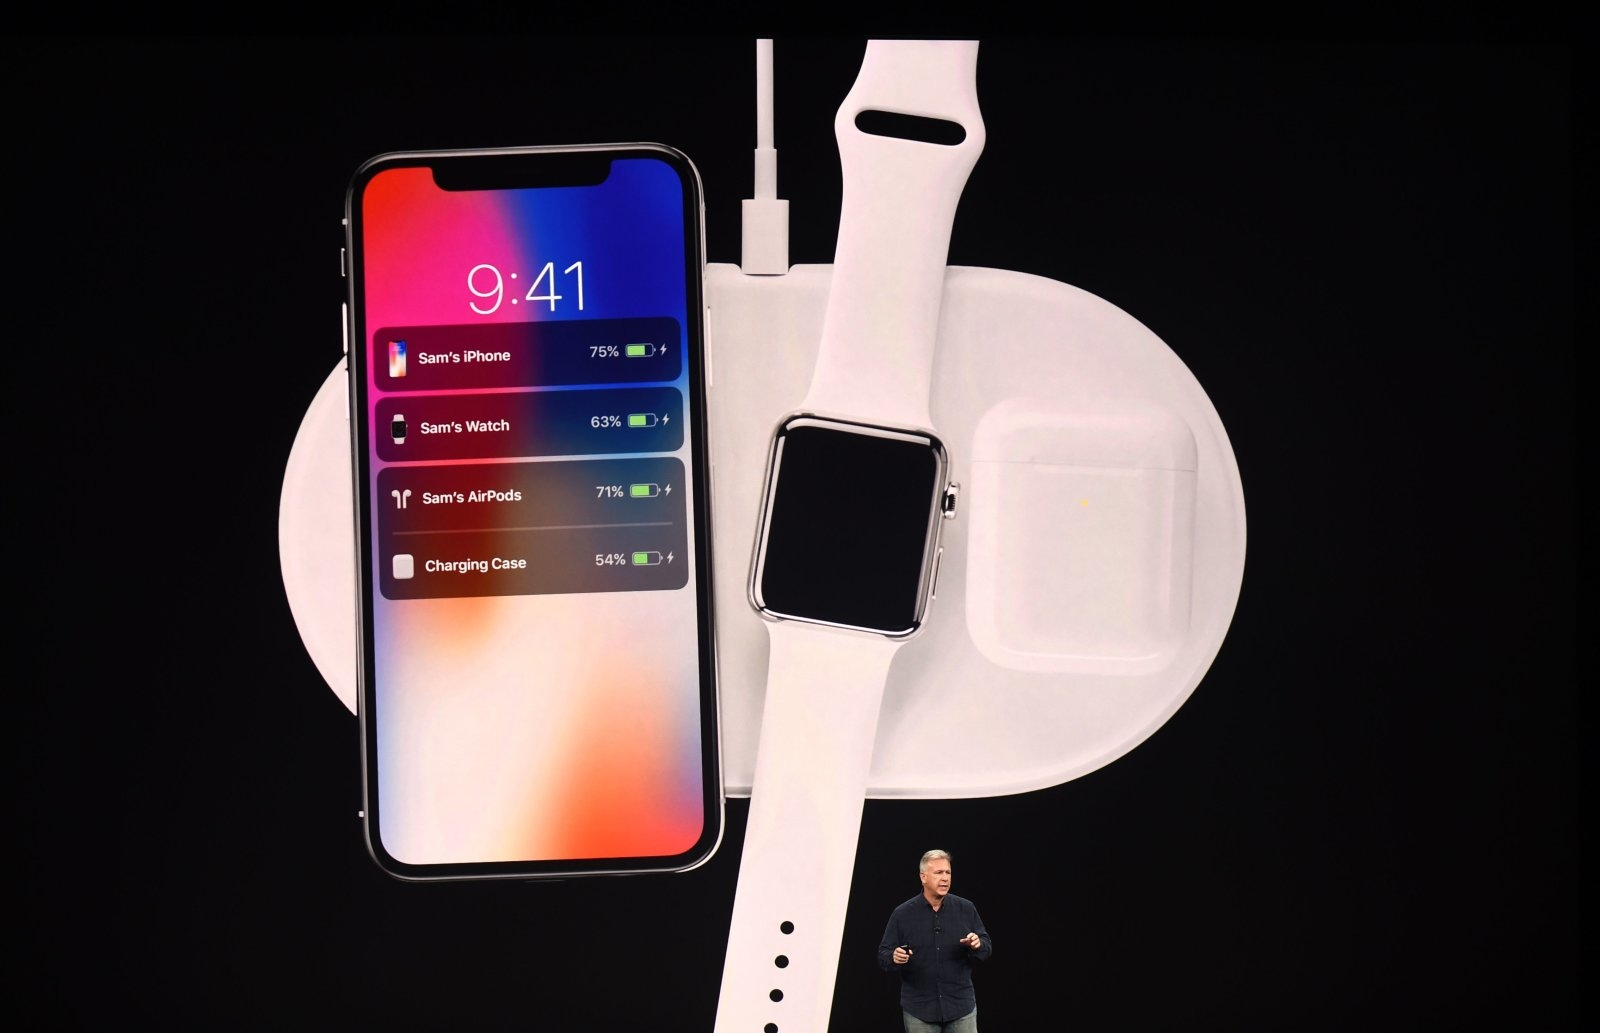 Senior Vice President of Worldwide Marketing at Apple Philip Schiller introduces AirPower, a wireless charging system, during a media event at Apple's new headquarters in Cupertino, California on September 12, 2017.  / AFP PHOTO / Josh Edelson        (Photo credit should read JOSH EDELSON/AFP/Getty Images)